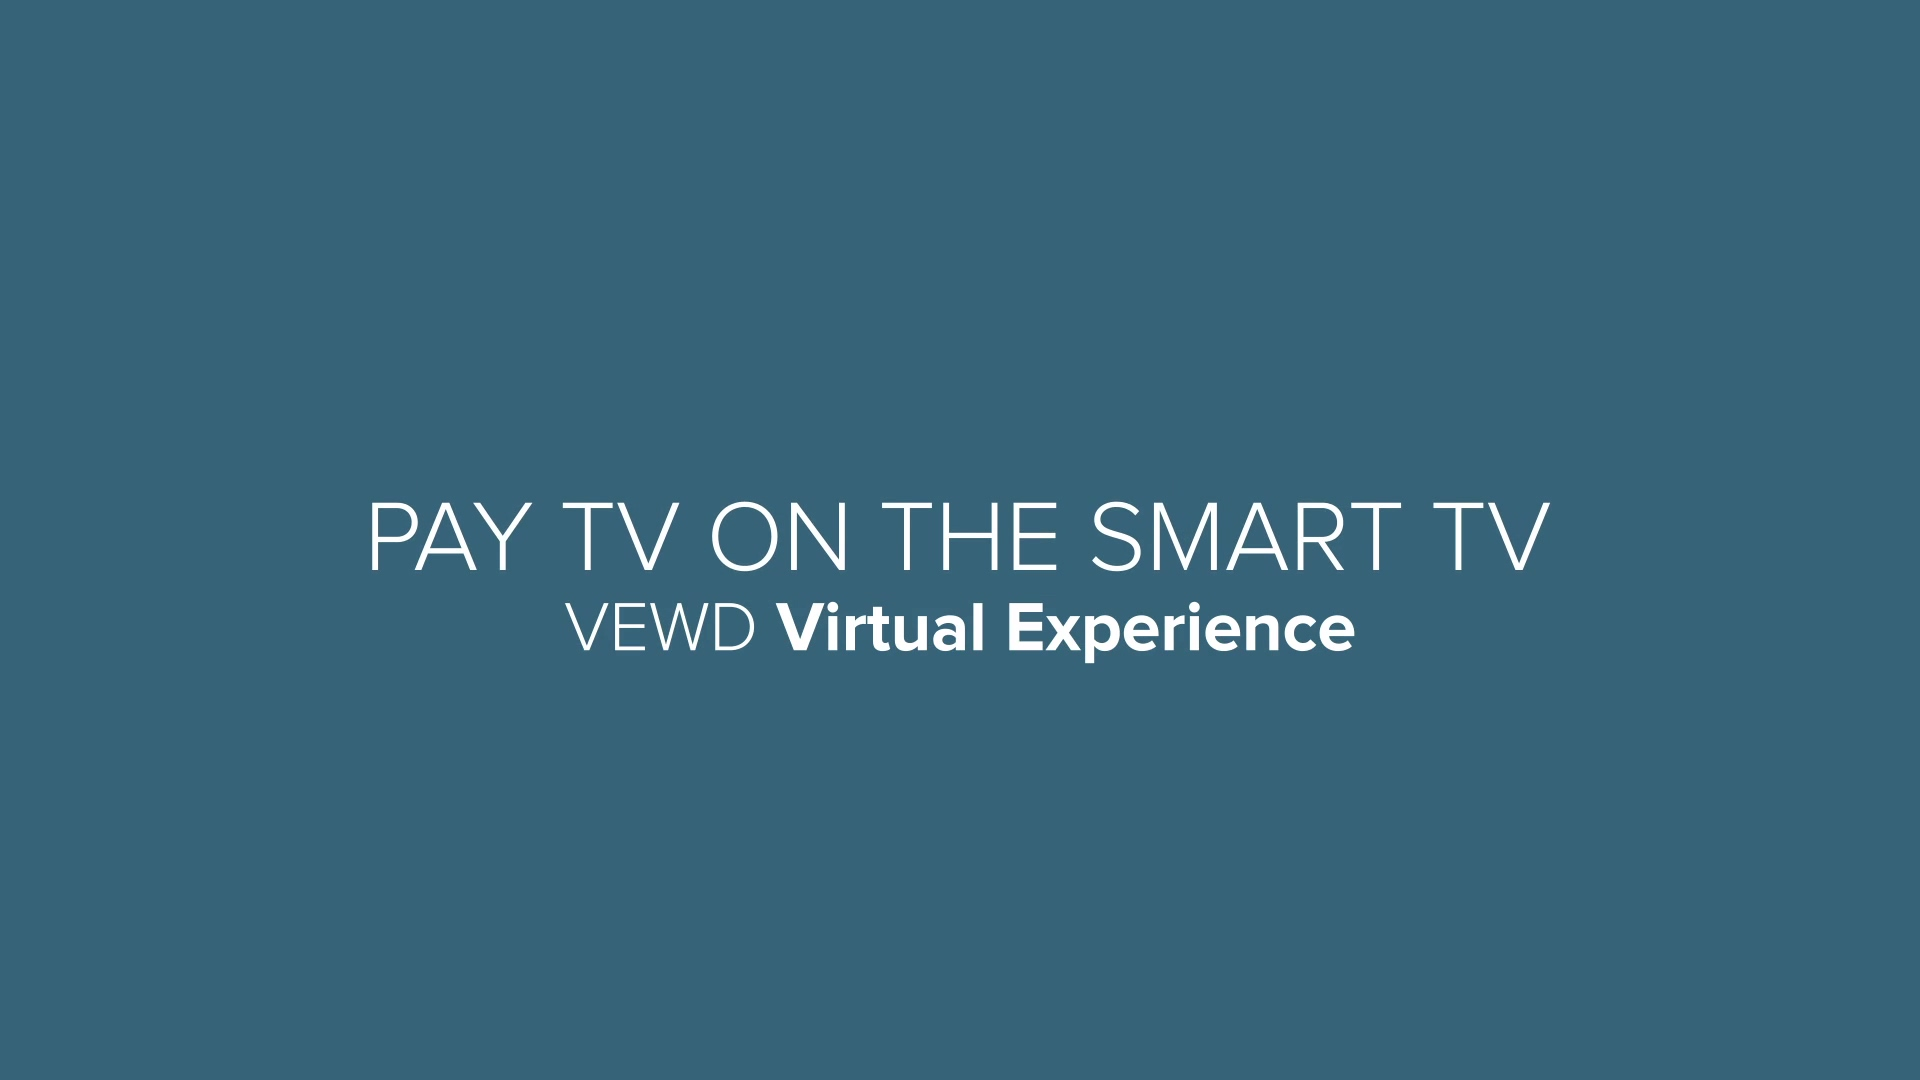 Vewd Talk - Pay TV on the Smart TV